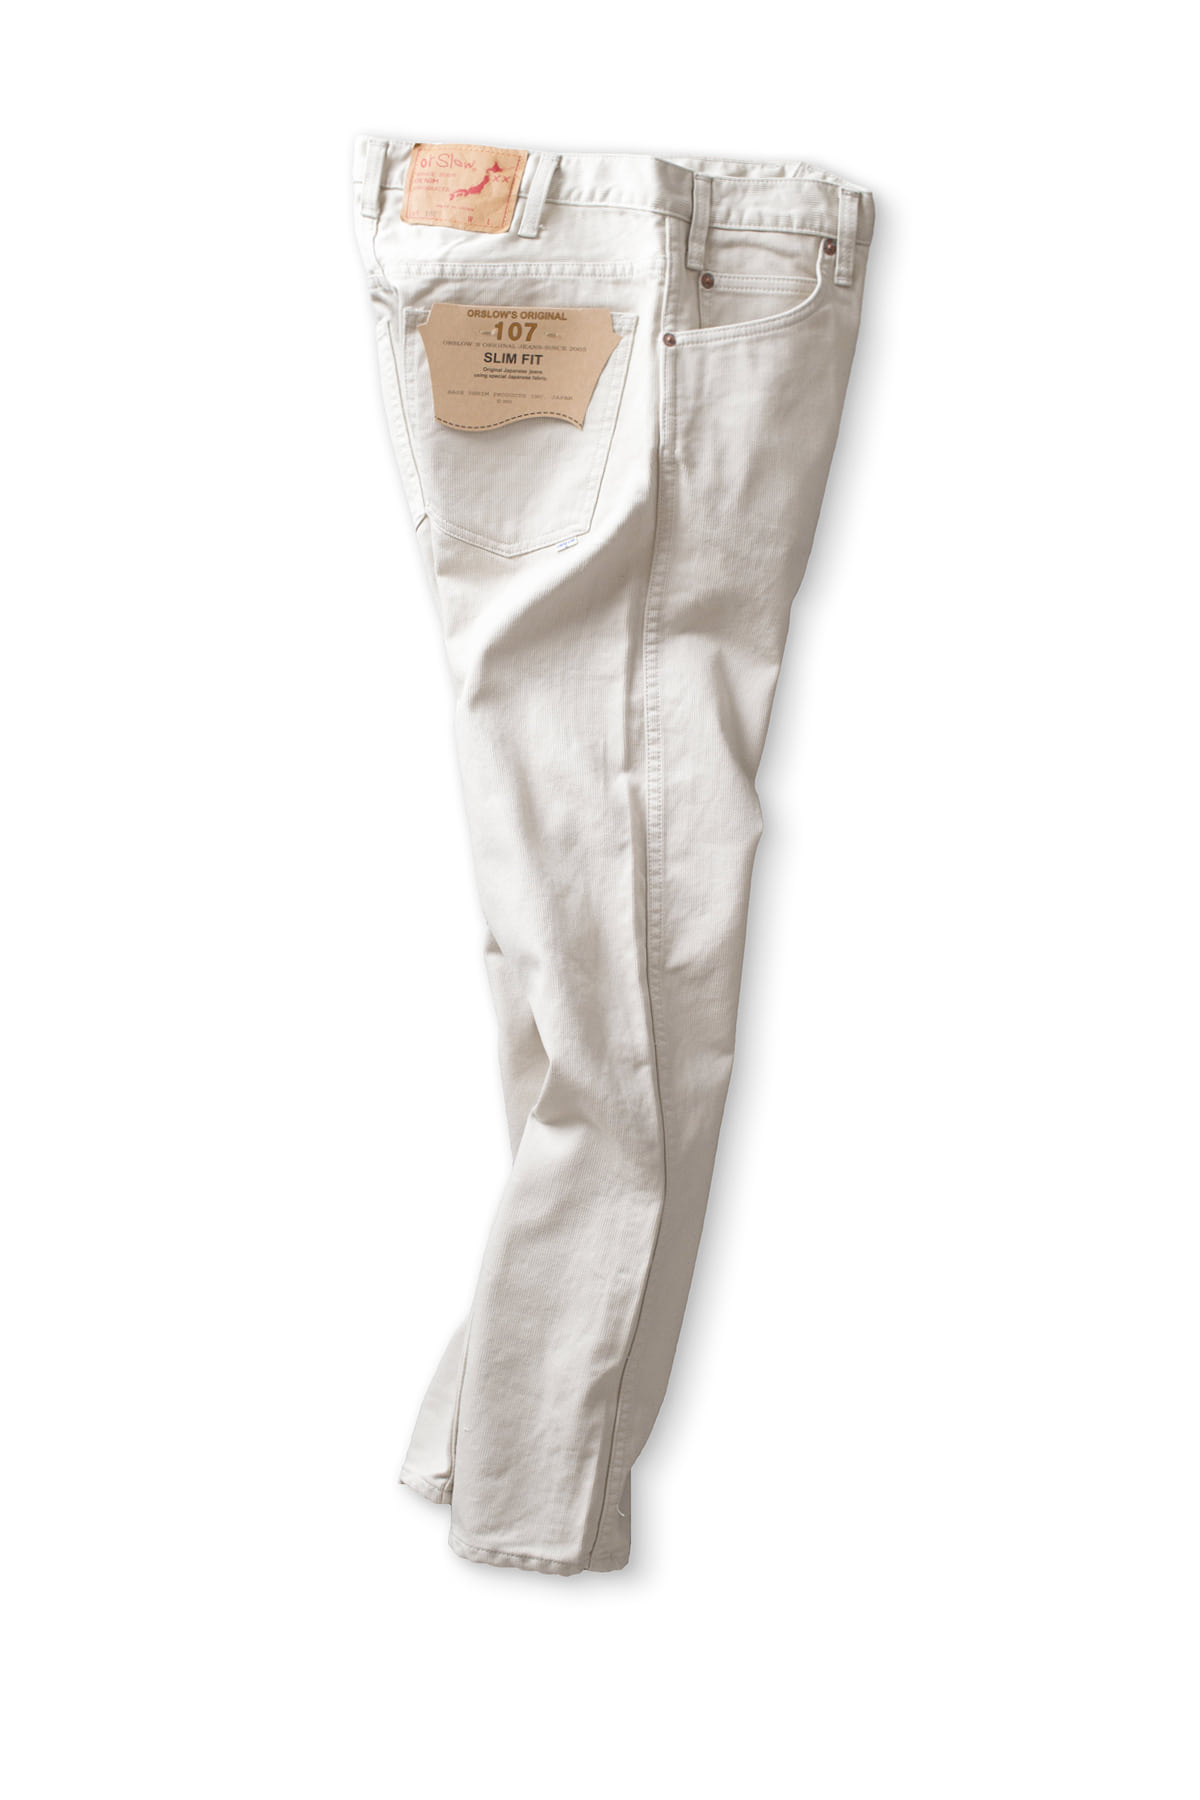 orSlow : Ivy Fit Bedford Cords (65 Ivory)